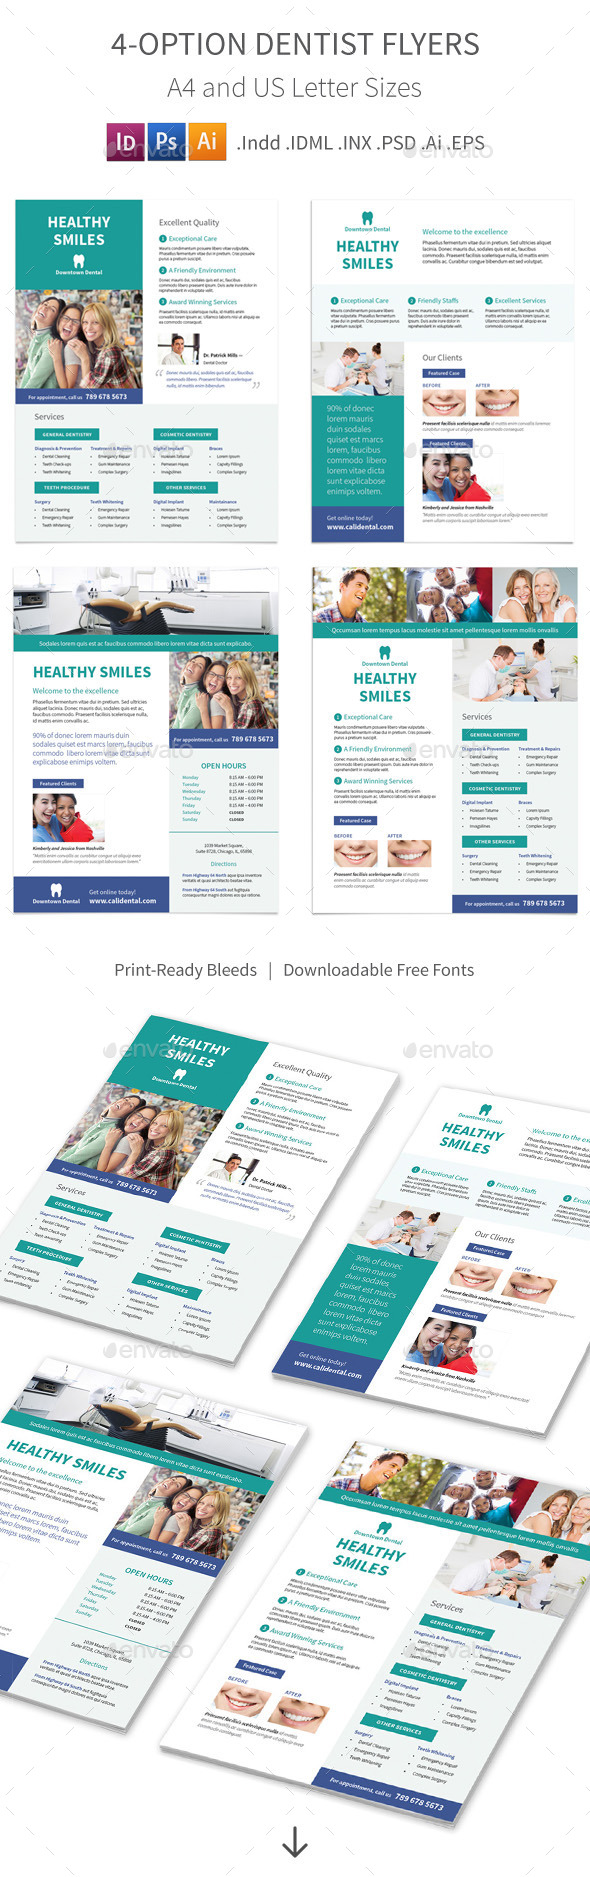 Dentist Flyers – 4 Options - Commerce Flyers